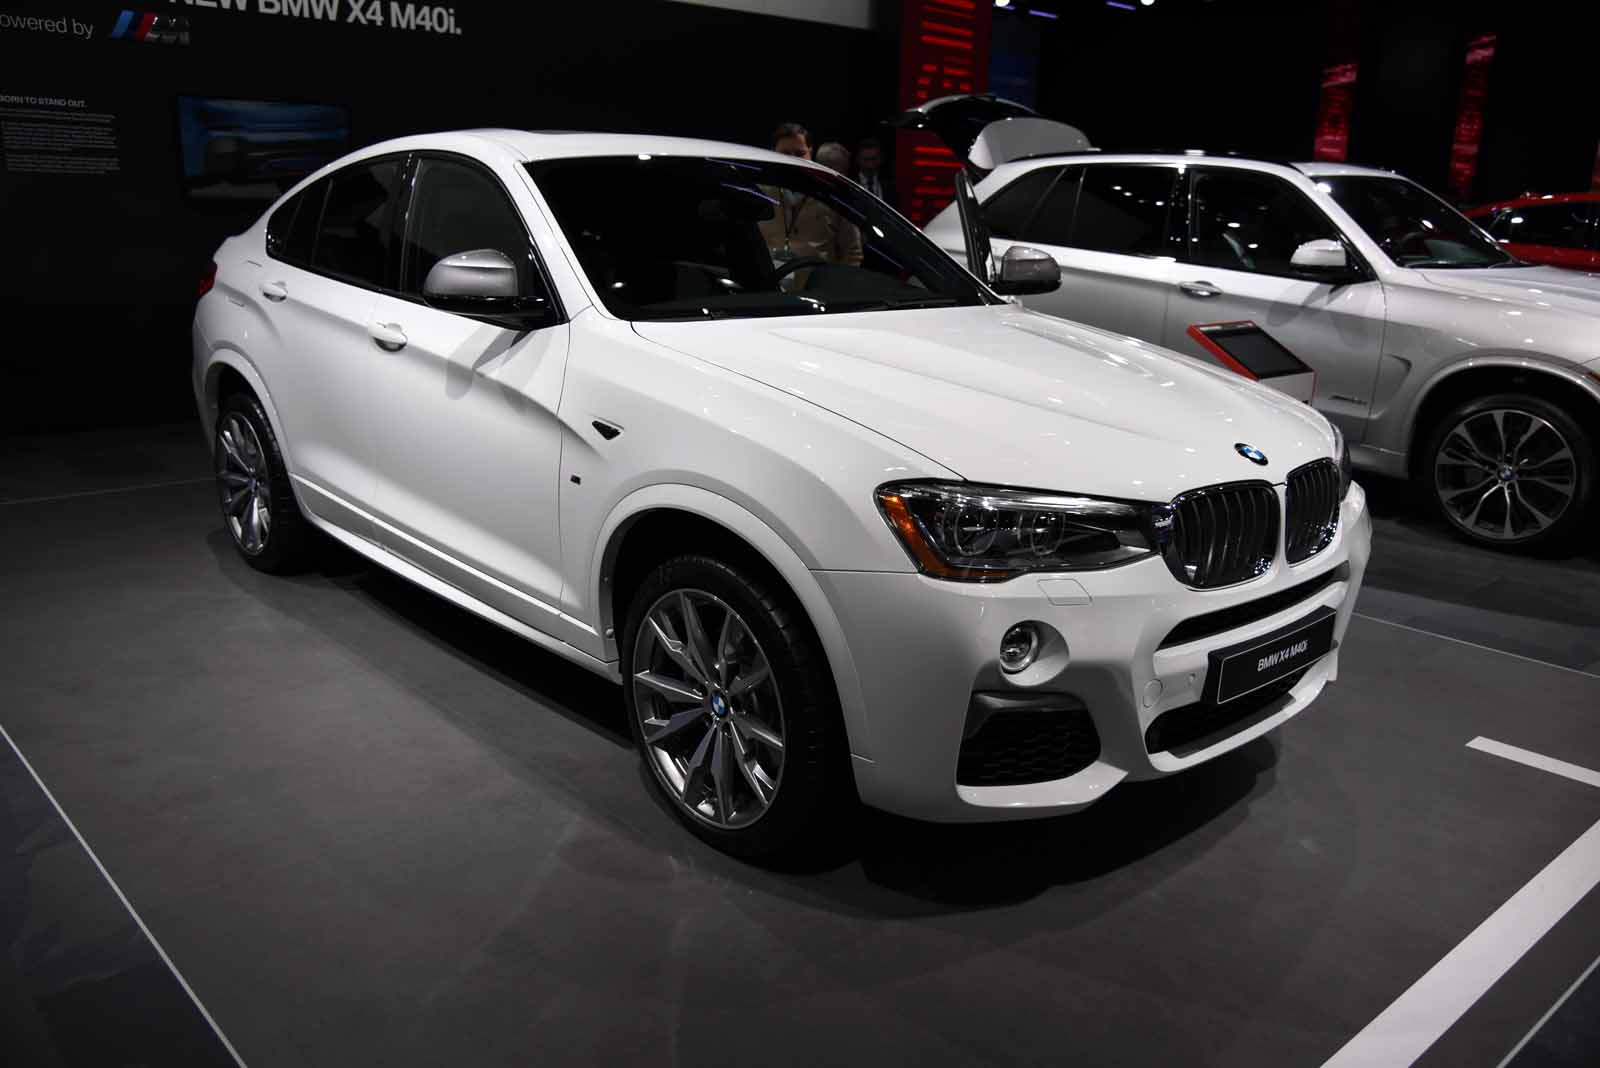 BMW X4 M40i Arrives as a Sporty SUV with 355 HP